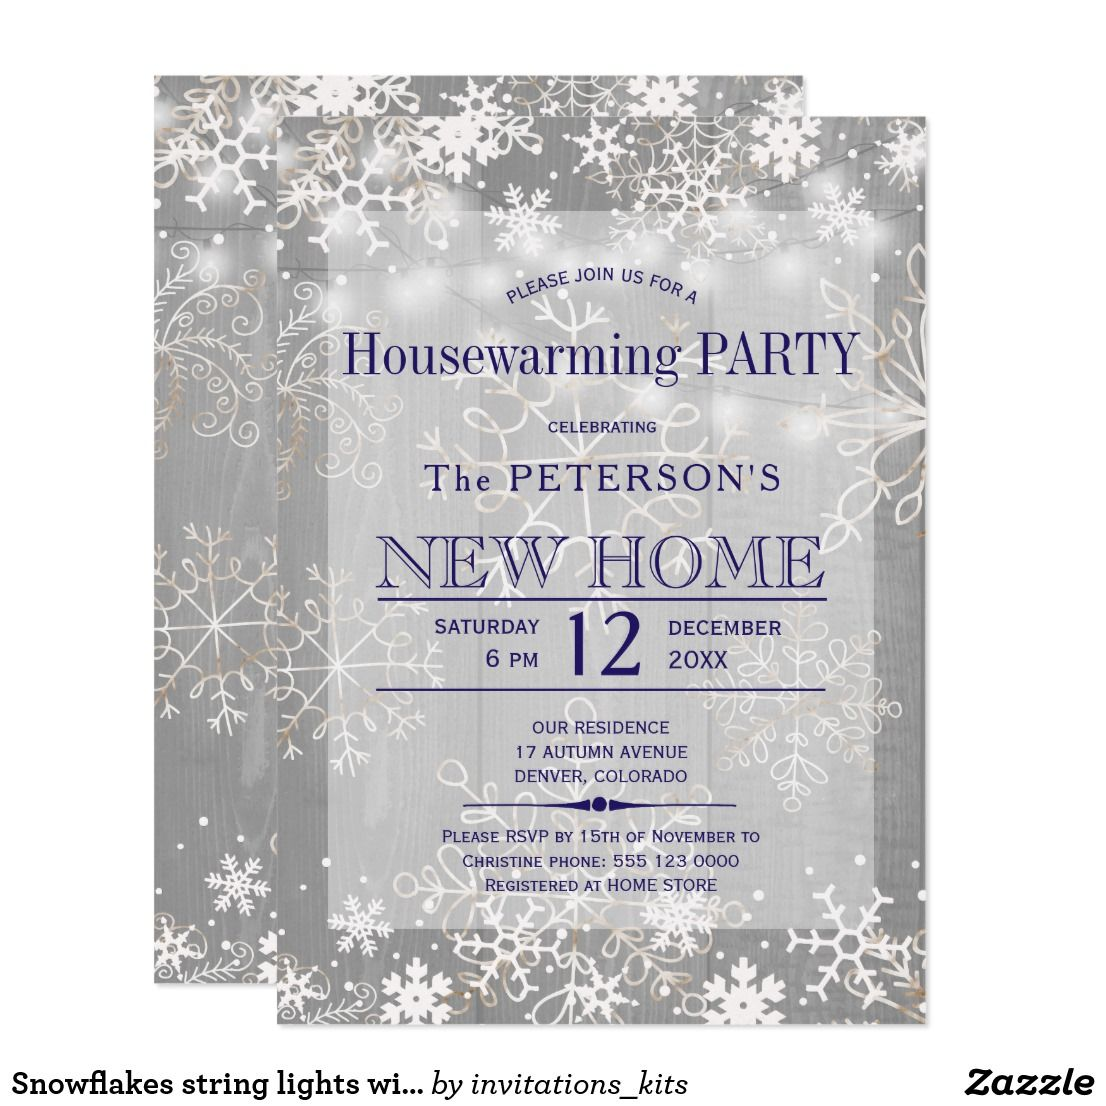 Snowflakes string lights winter housewarming party card | Invitation ...